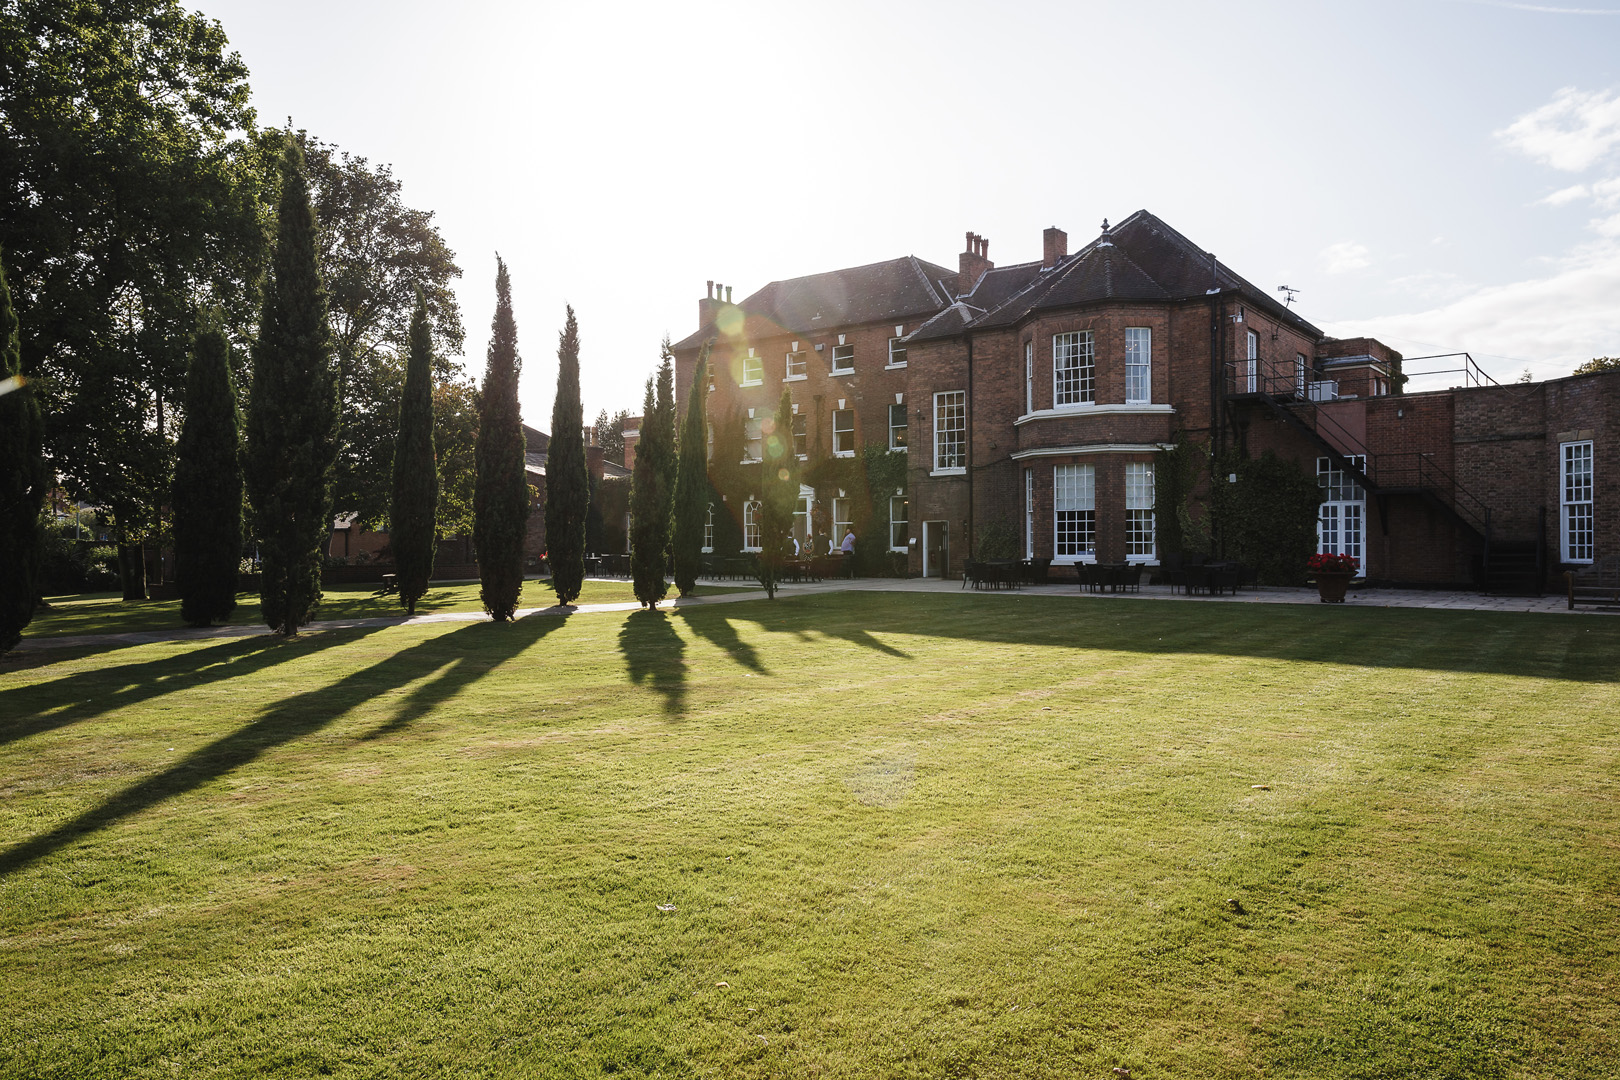 Sun shining across the gardens for this west retford hotel wedding